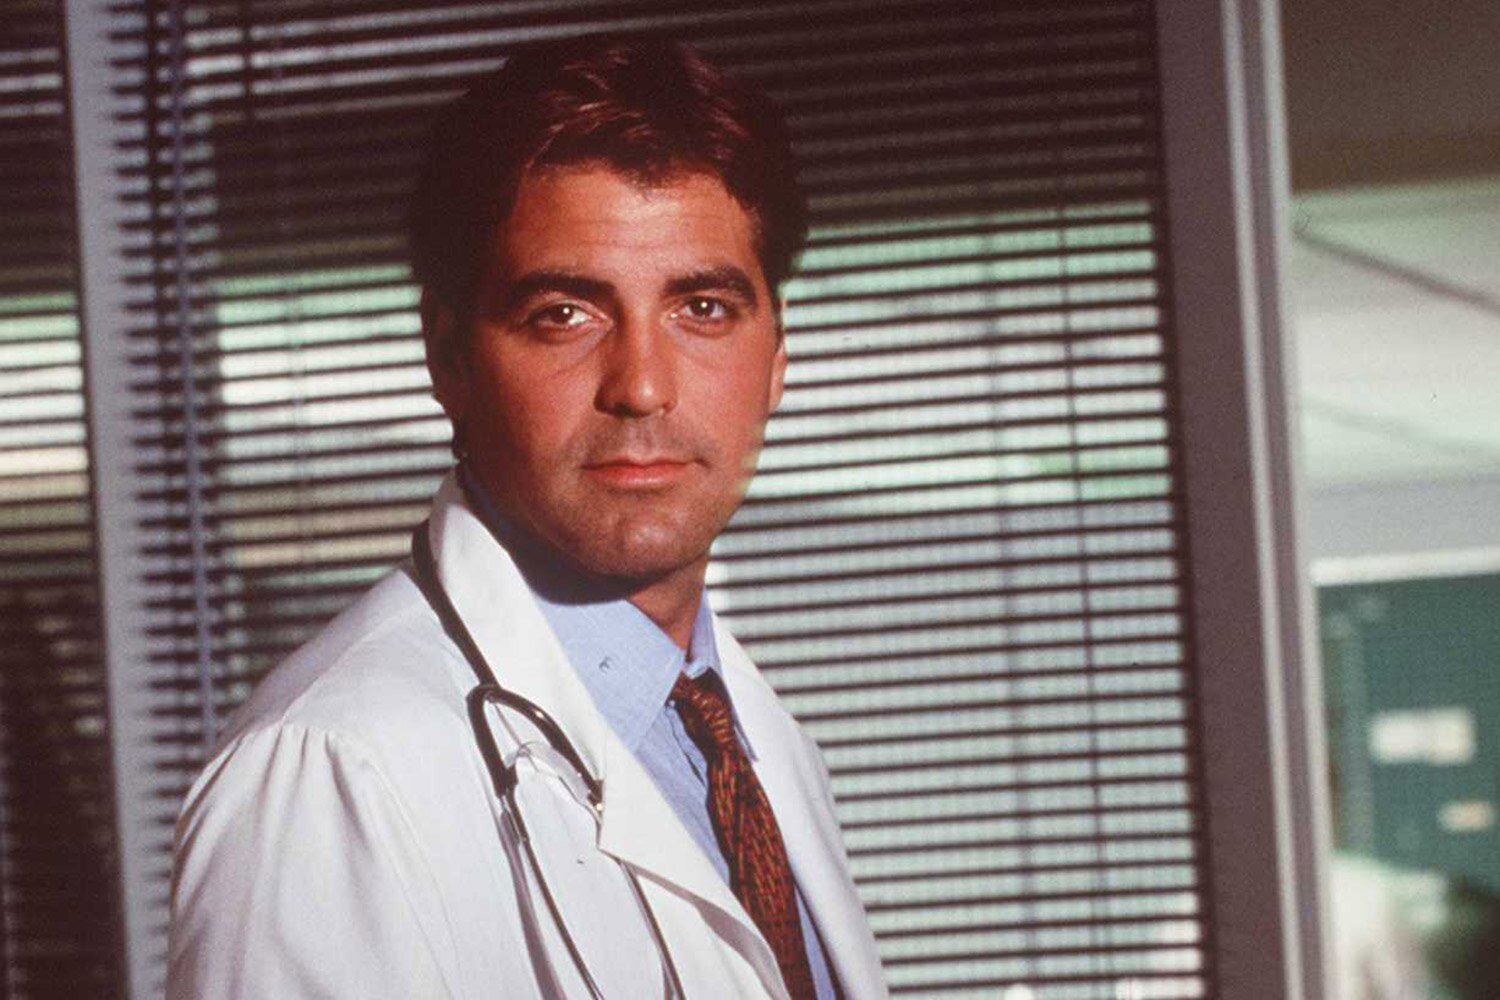 George Clooney On Whether He'd Do an ER Reboot: 'It's Hard to Catch Lightning Again' Image?url=https%3A%2F%2Fstatic.onecms.io%2Fwp-content%2Fuploads%2Fsites%2F20%2F2021%2F04%2F22%2FGeorge-Clooney